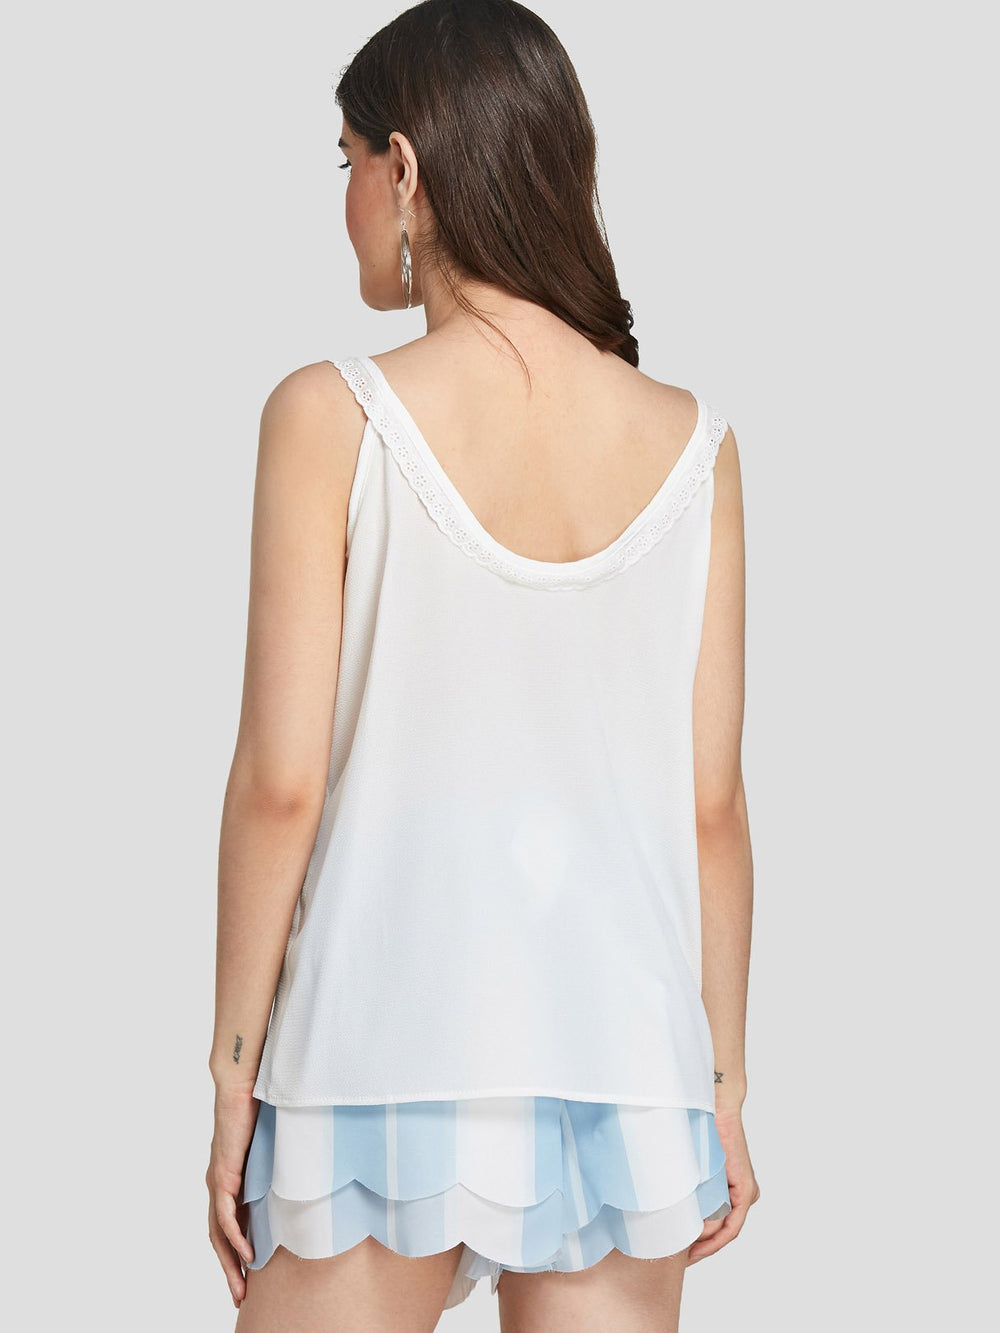 Ladies Sleeveless Tank Top